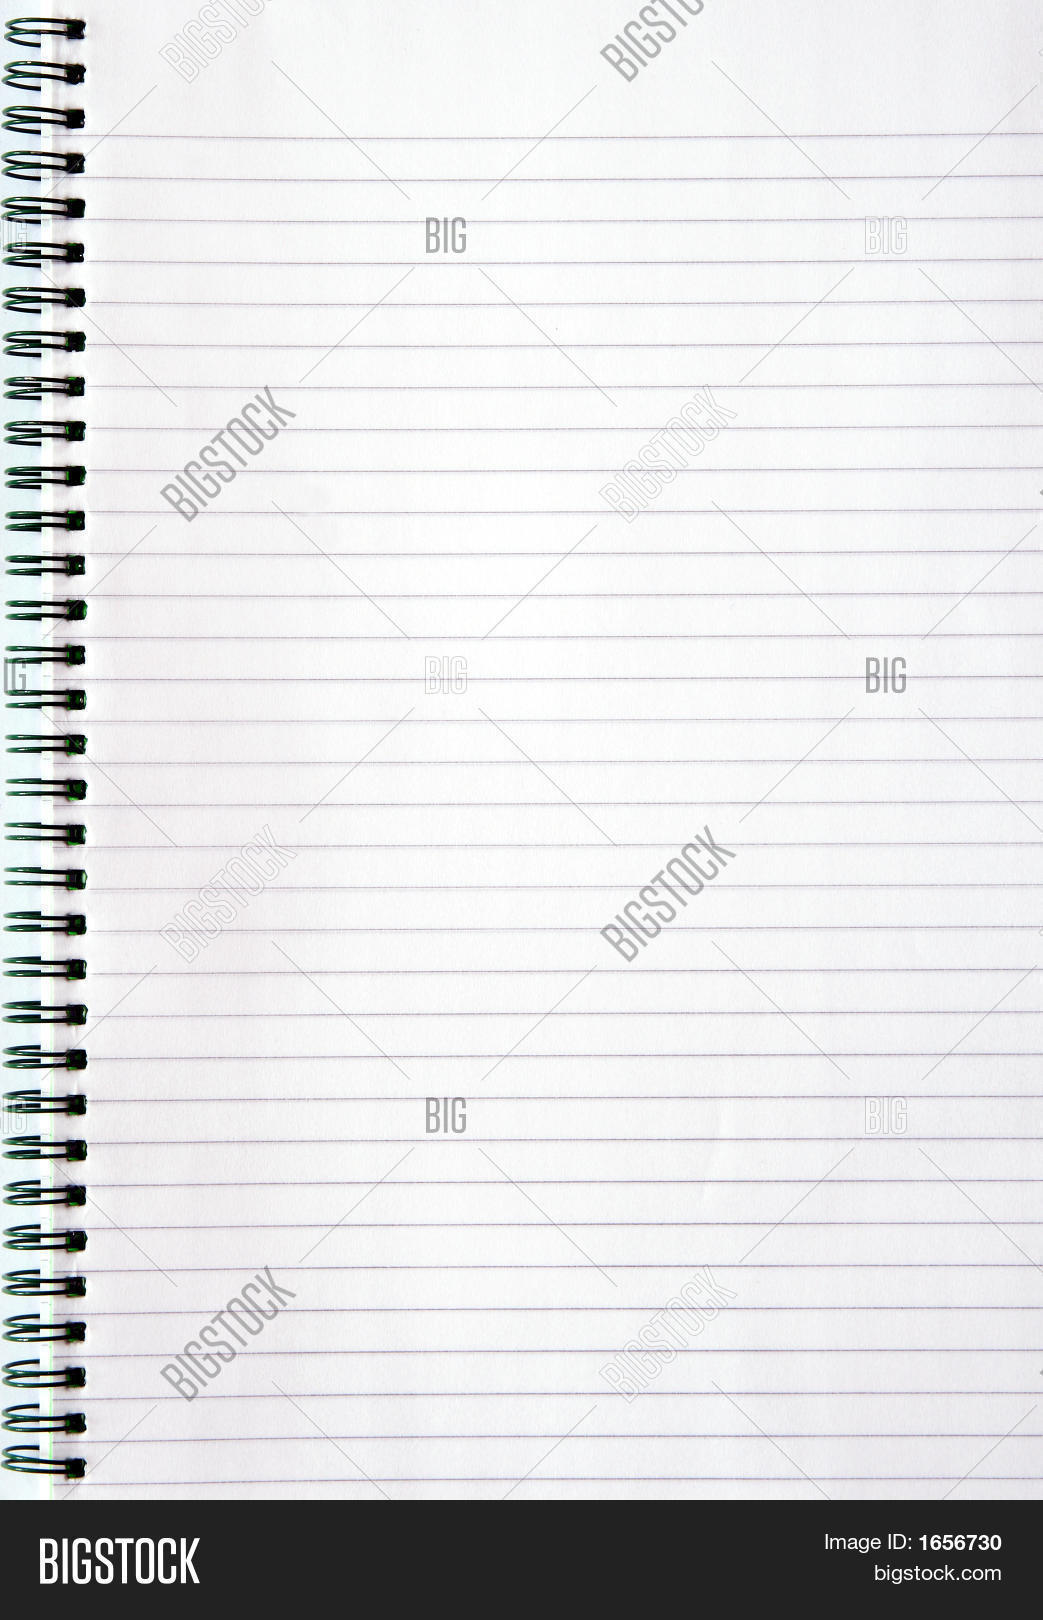 a4,background,big,bind,blank,book,color,copy,empty,green,large,line,list,memo,message,note,notebook,notebook paper,notepad,notepaper,pad,page,paper,ring,size,space,spiral,stationary,study,supply,white,write